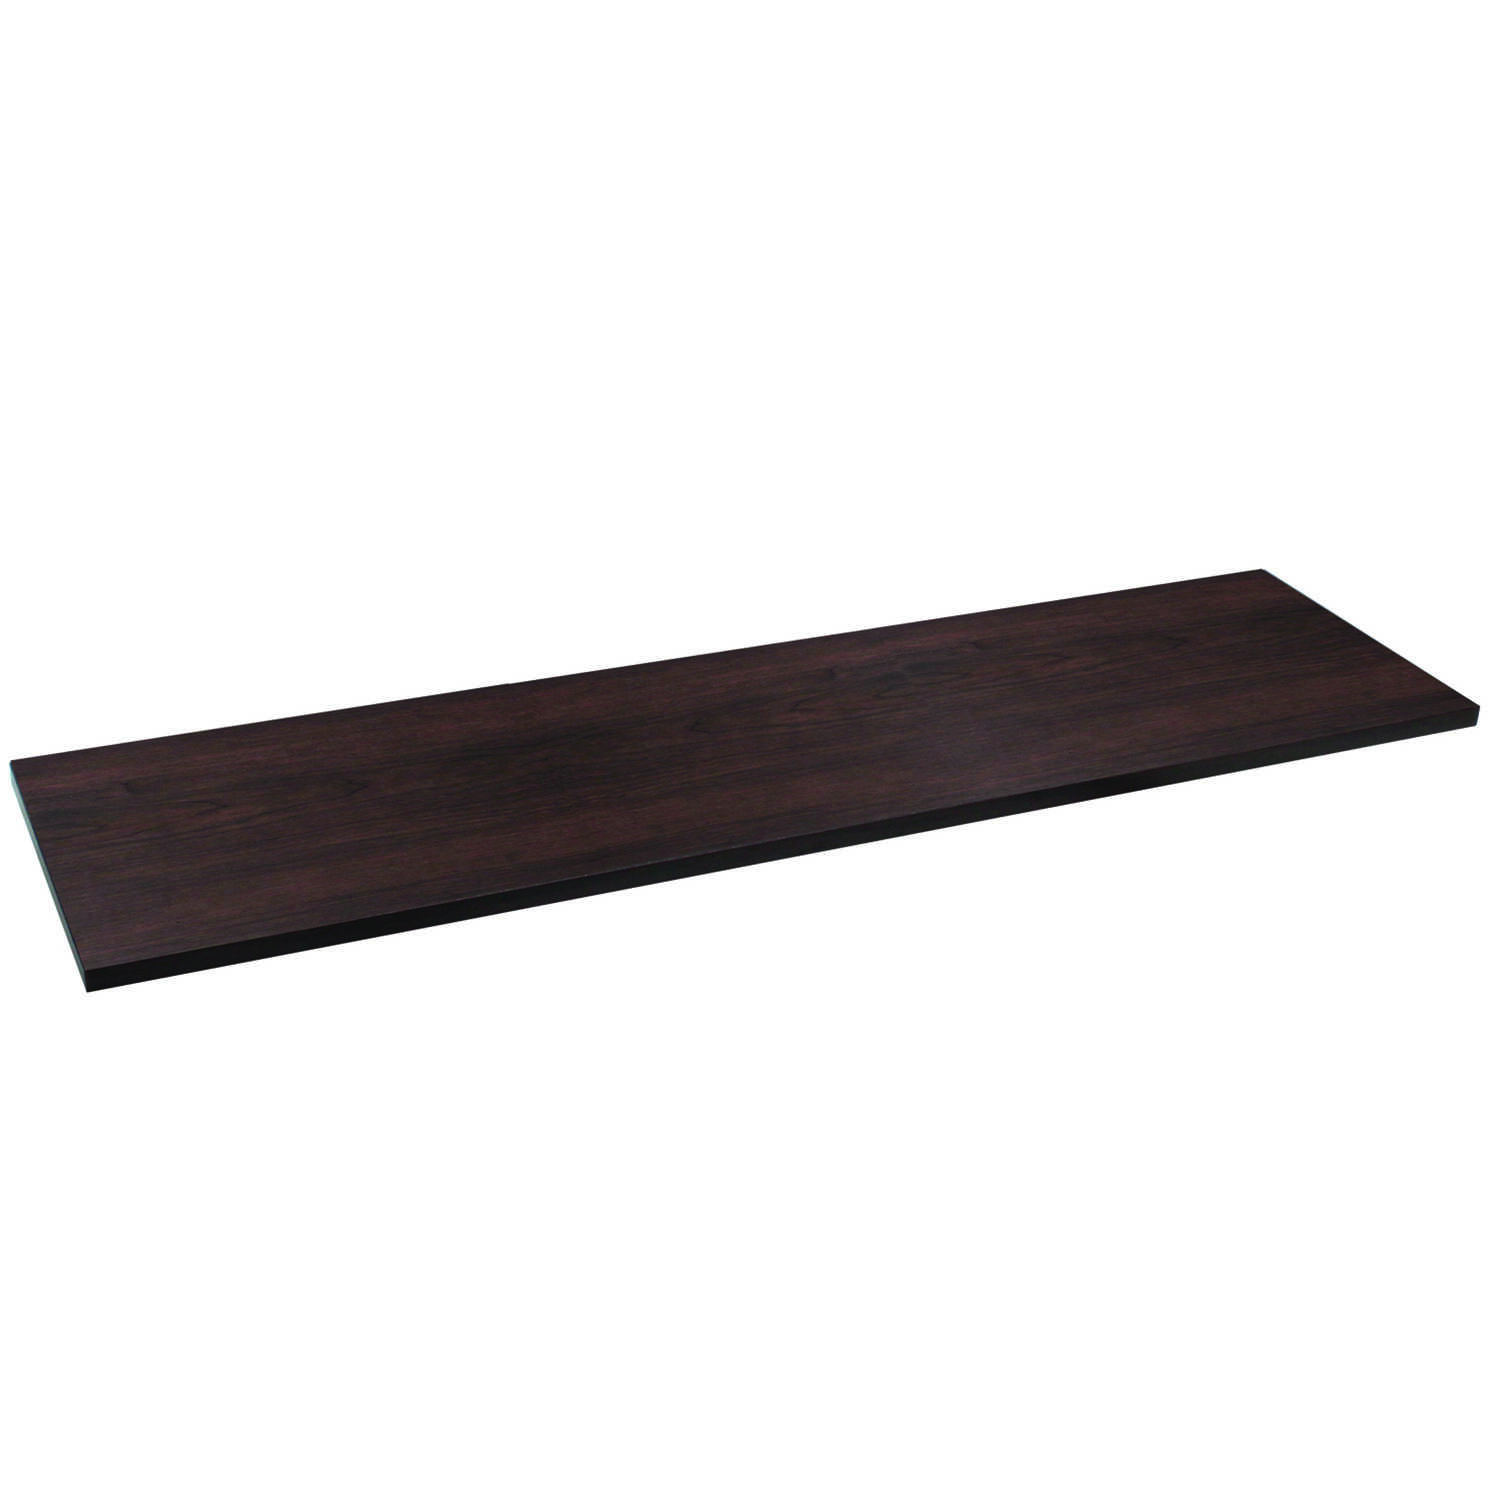 Knape & Vogt  5/8 in. H x 24 in. D x 12 in. W Espresso  Particle Board  Shelf